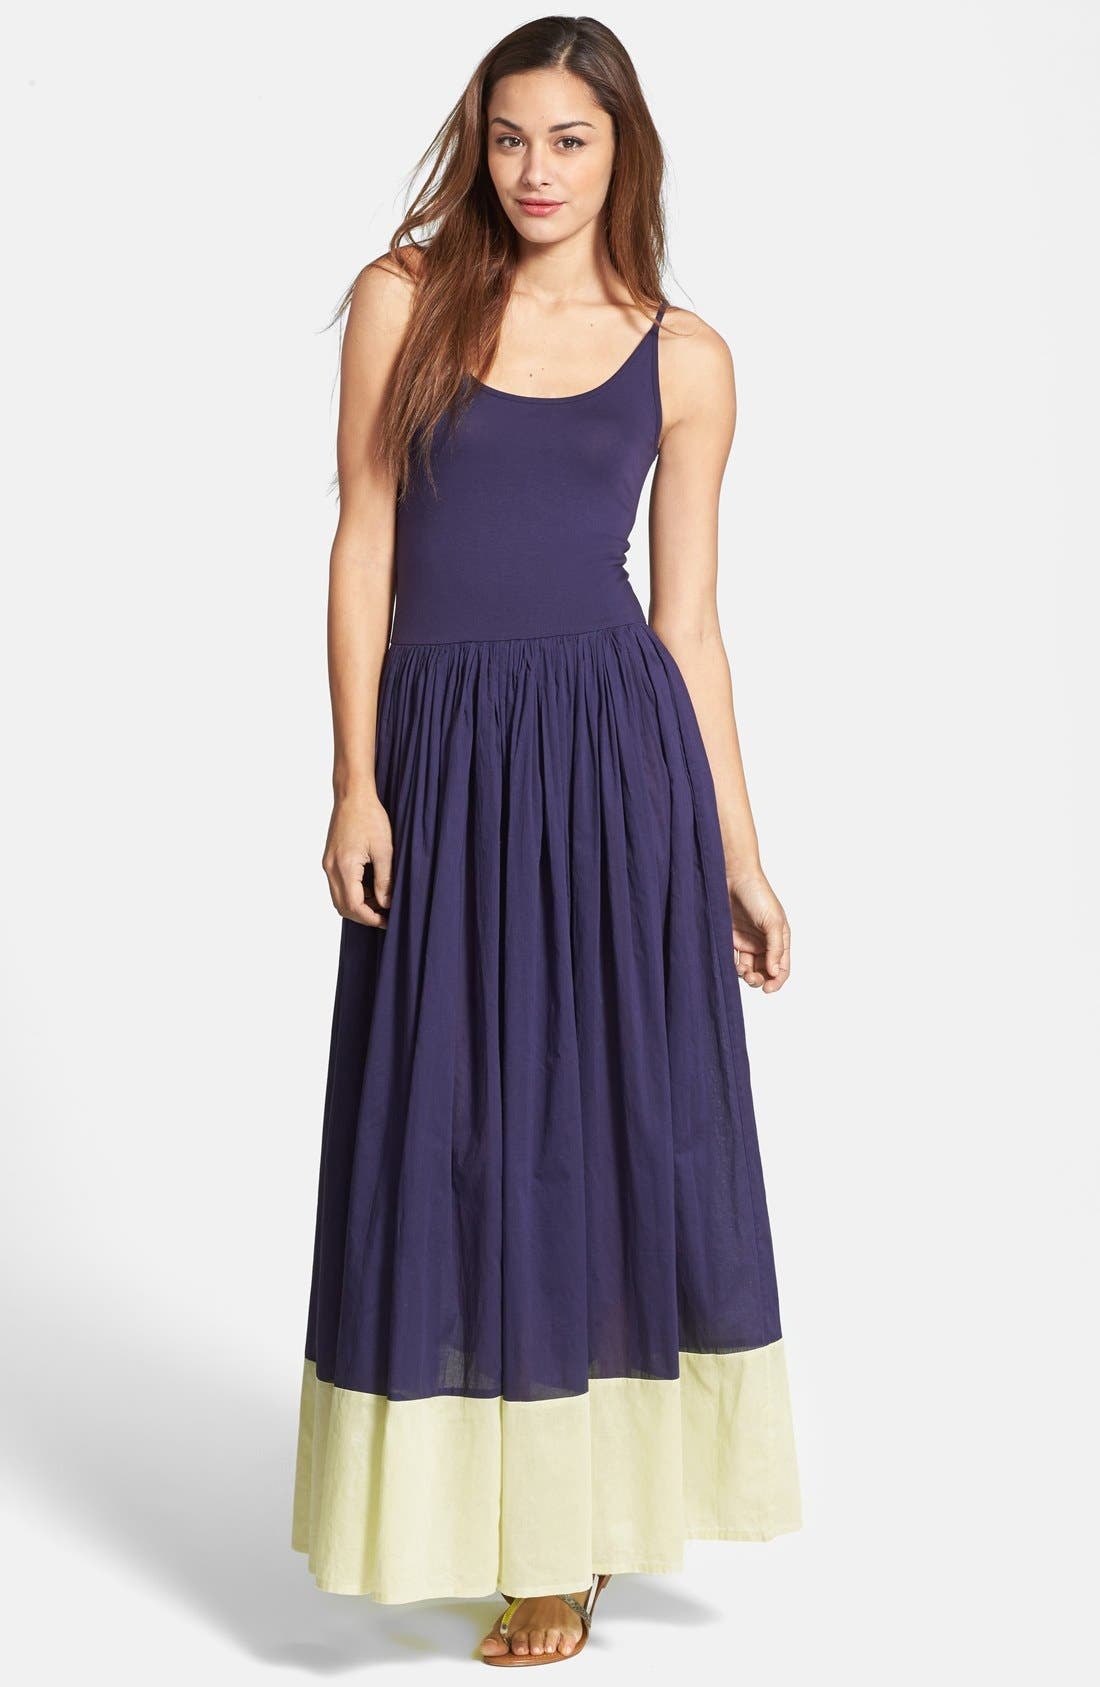 'Marionette' Cotton Maxi Dress,                             Main thumbnail 1, color,                             499